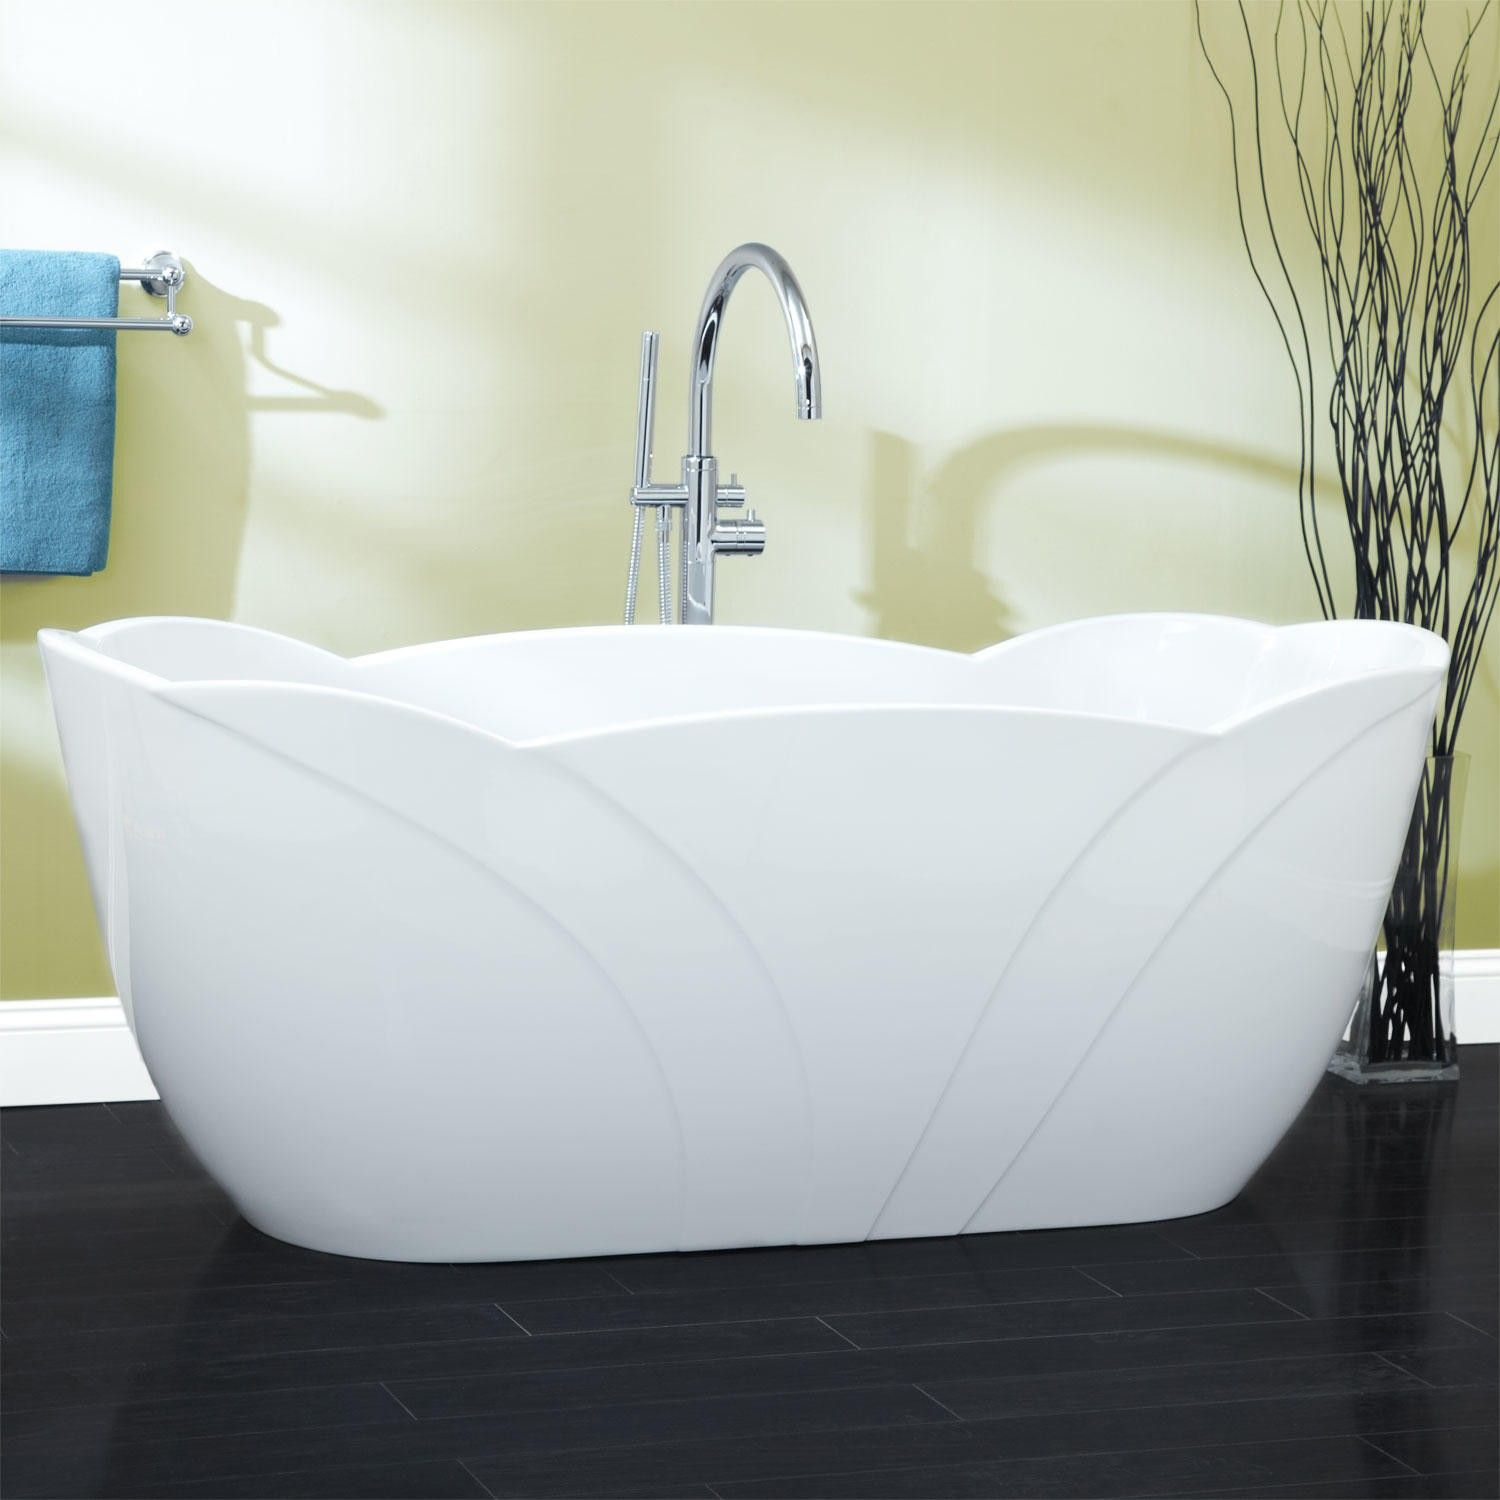 68 Leola Acrylic Freestanding Tub  Bathtubs  Bathroom